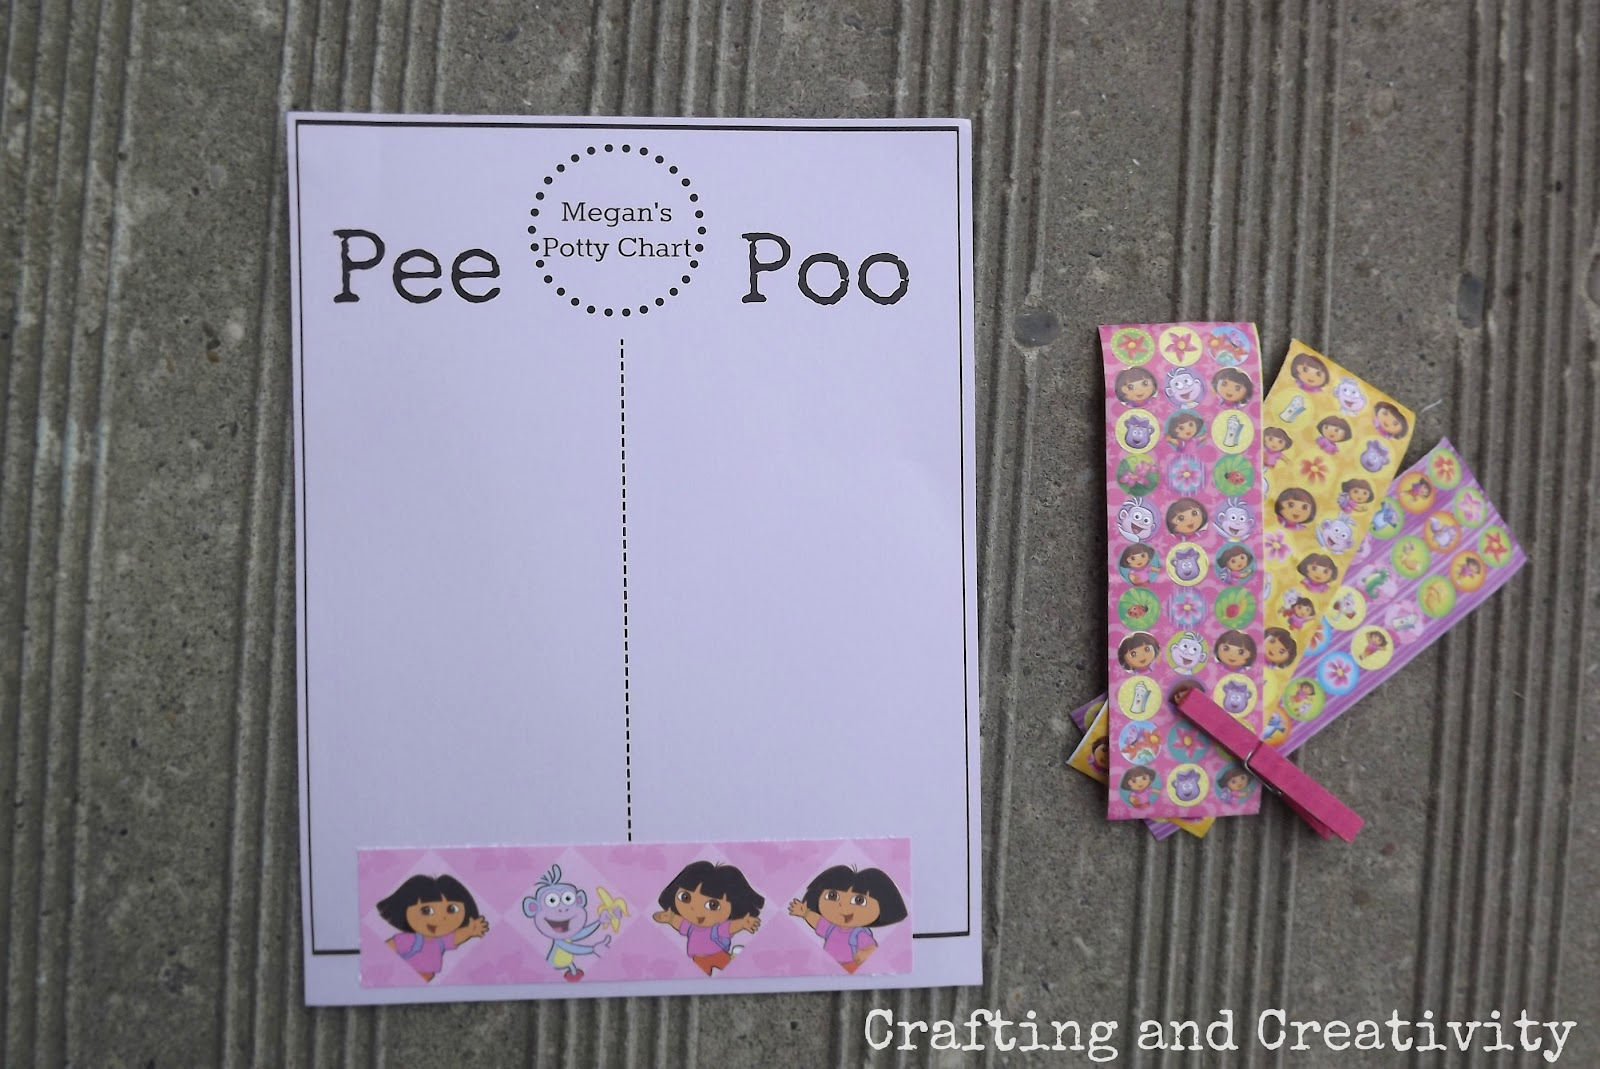 crafting and creativity potty training chart printable i totally have mixed feeling of dreading the potty training process and relief excitement at the thought of getting her out of diapers wish us luck